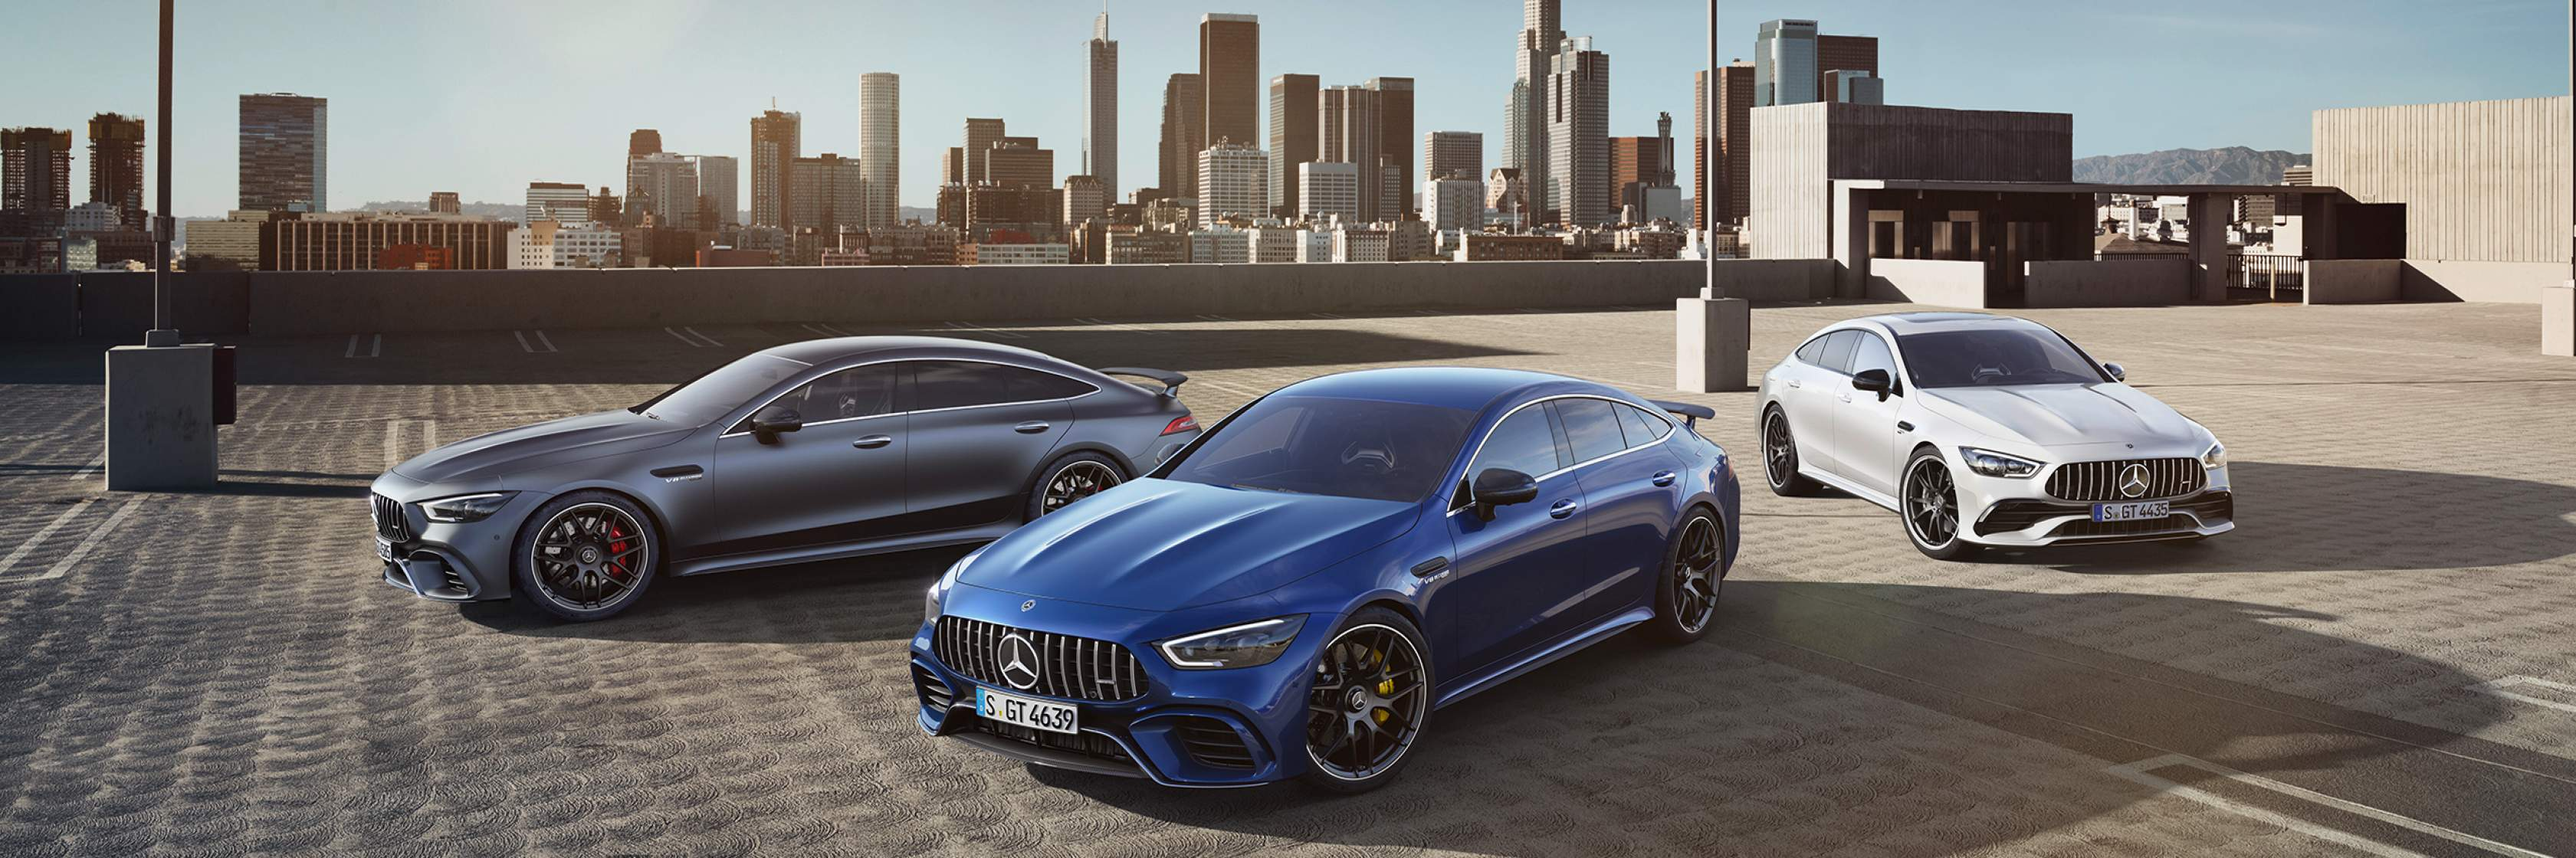 Огляд Mercedes-AMG GT 4-door Coupe